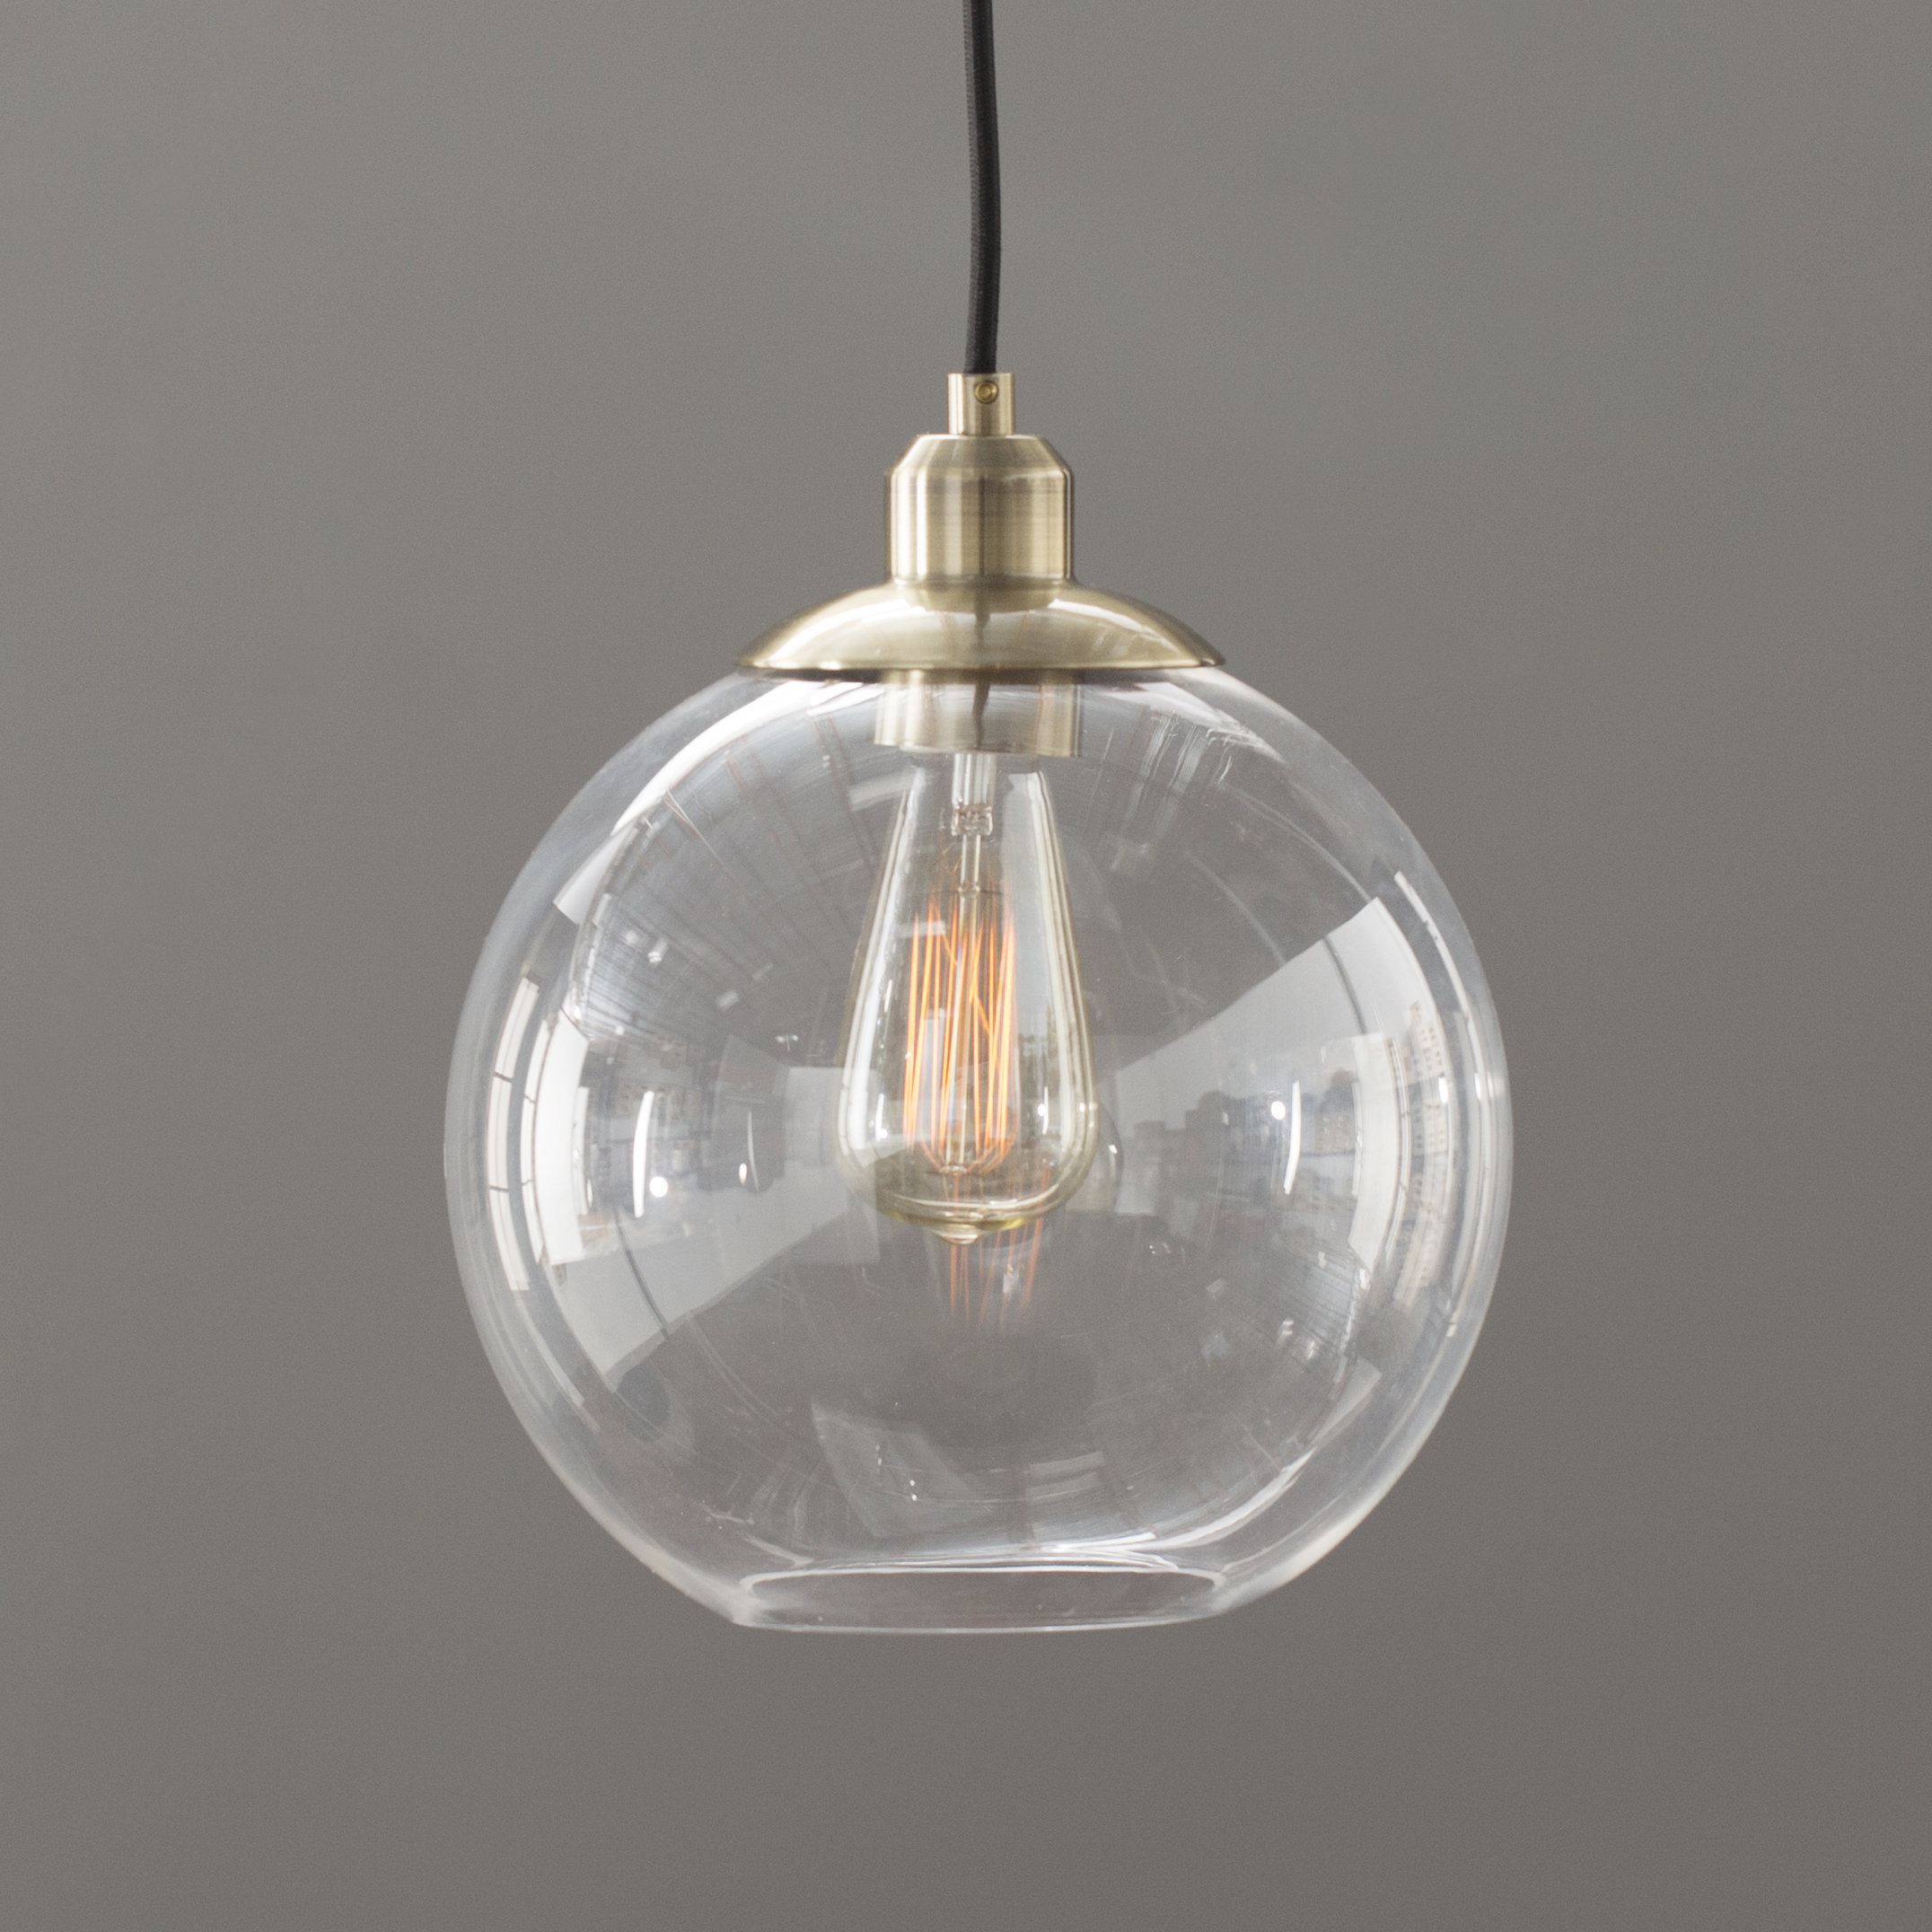 Gehry 1-Light Globe Pendant with Abordale 1-Light Single Dome Pendants (Image 15 of 30)